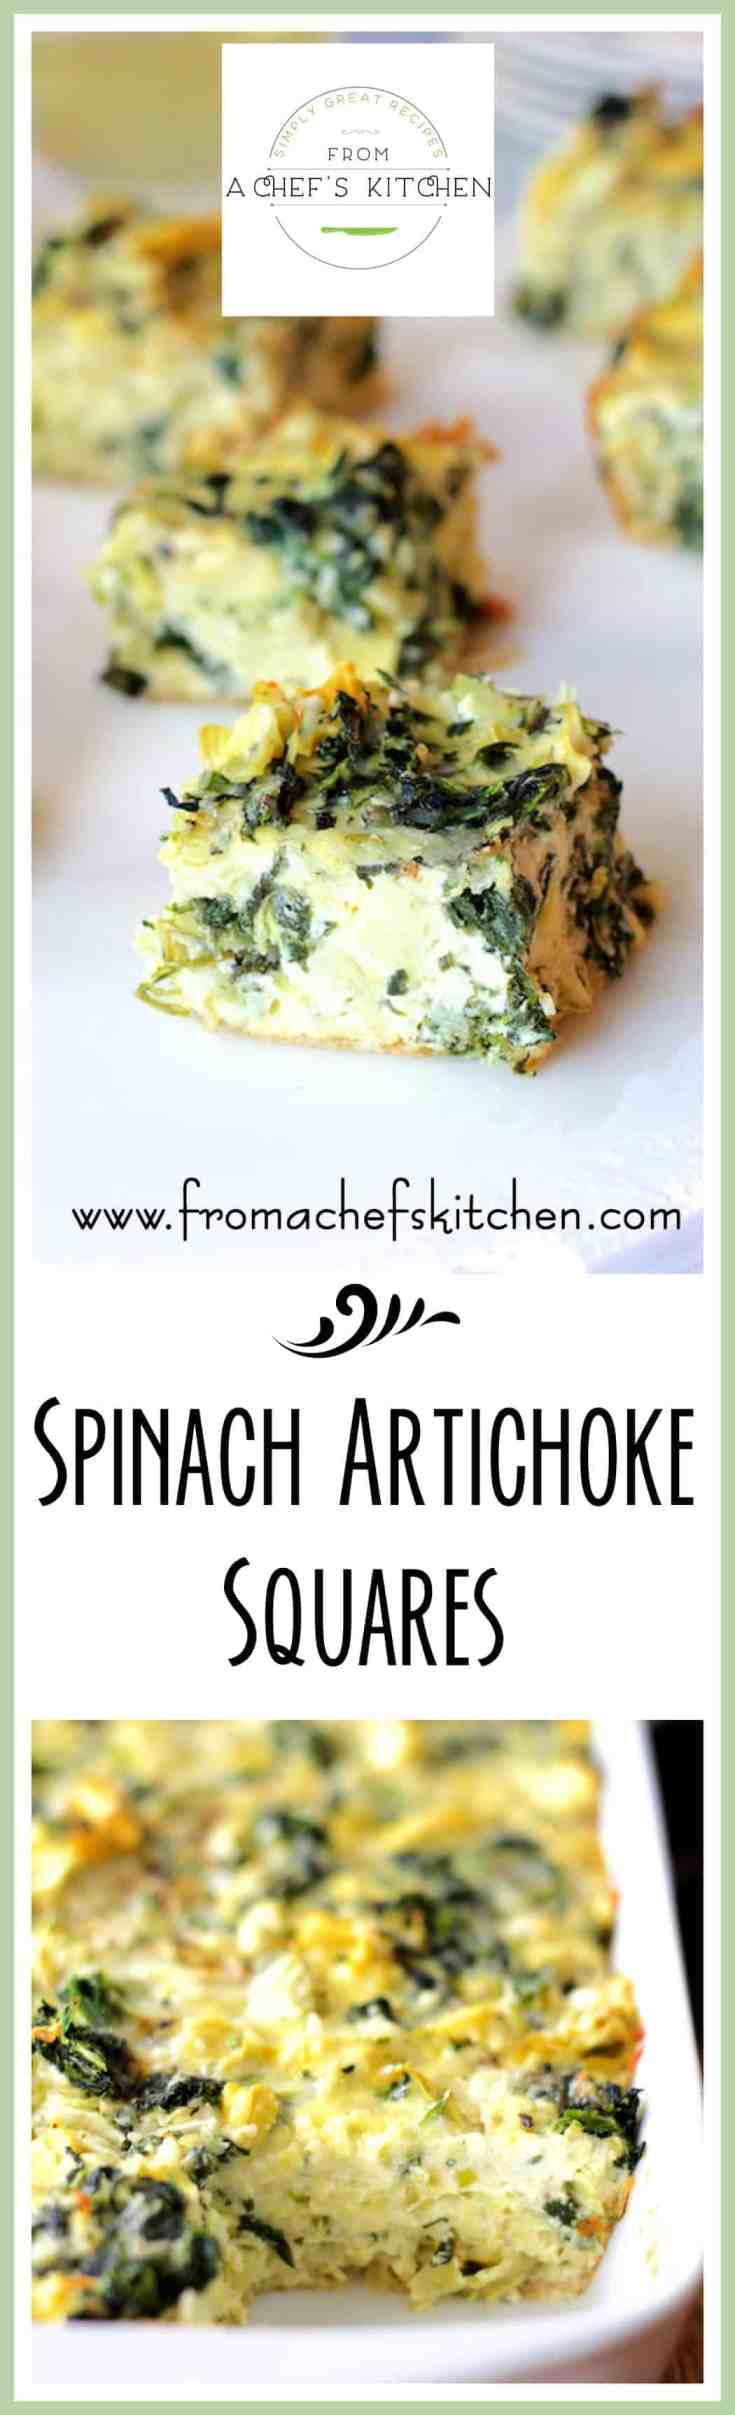 Spinach Artichoke Squares are a delicious low-carb spin on classic spinach artichoke dip for the perfect party treat everyone can enjoy! #appetizer #brunch #lowcarb #spinach #artichoke